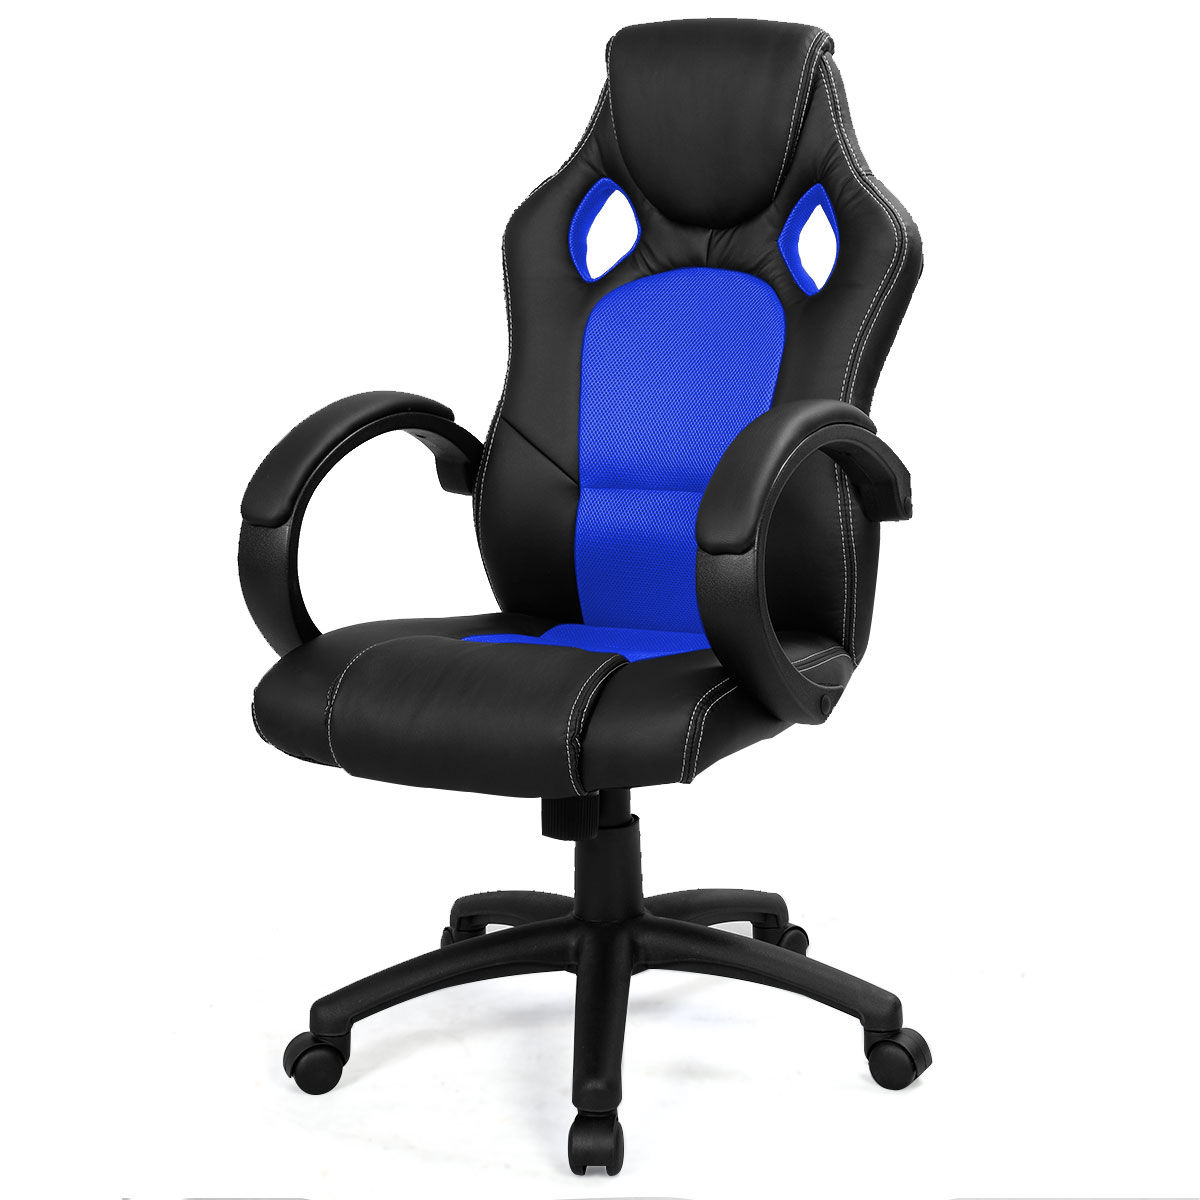 Racing Synthetic Leather Internet Cafe Computer Game Chair Comfortable Household Office Furniture Home Lift Rotating Fixture office furniture game manager household rotate artificial leather chair